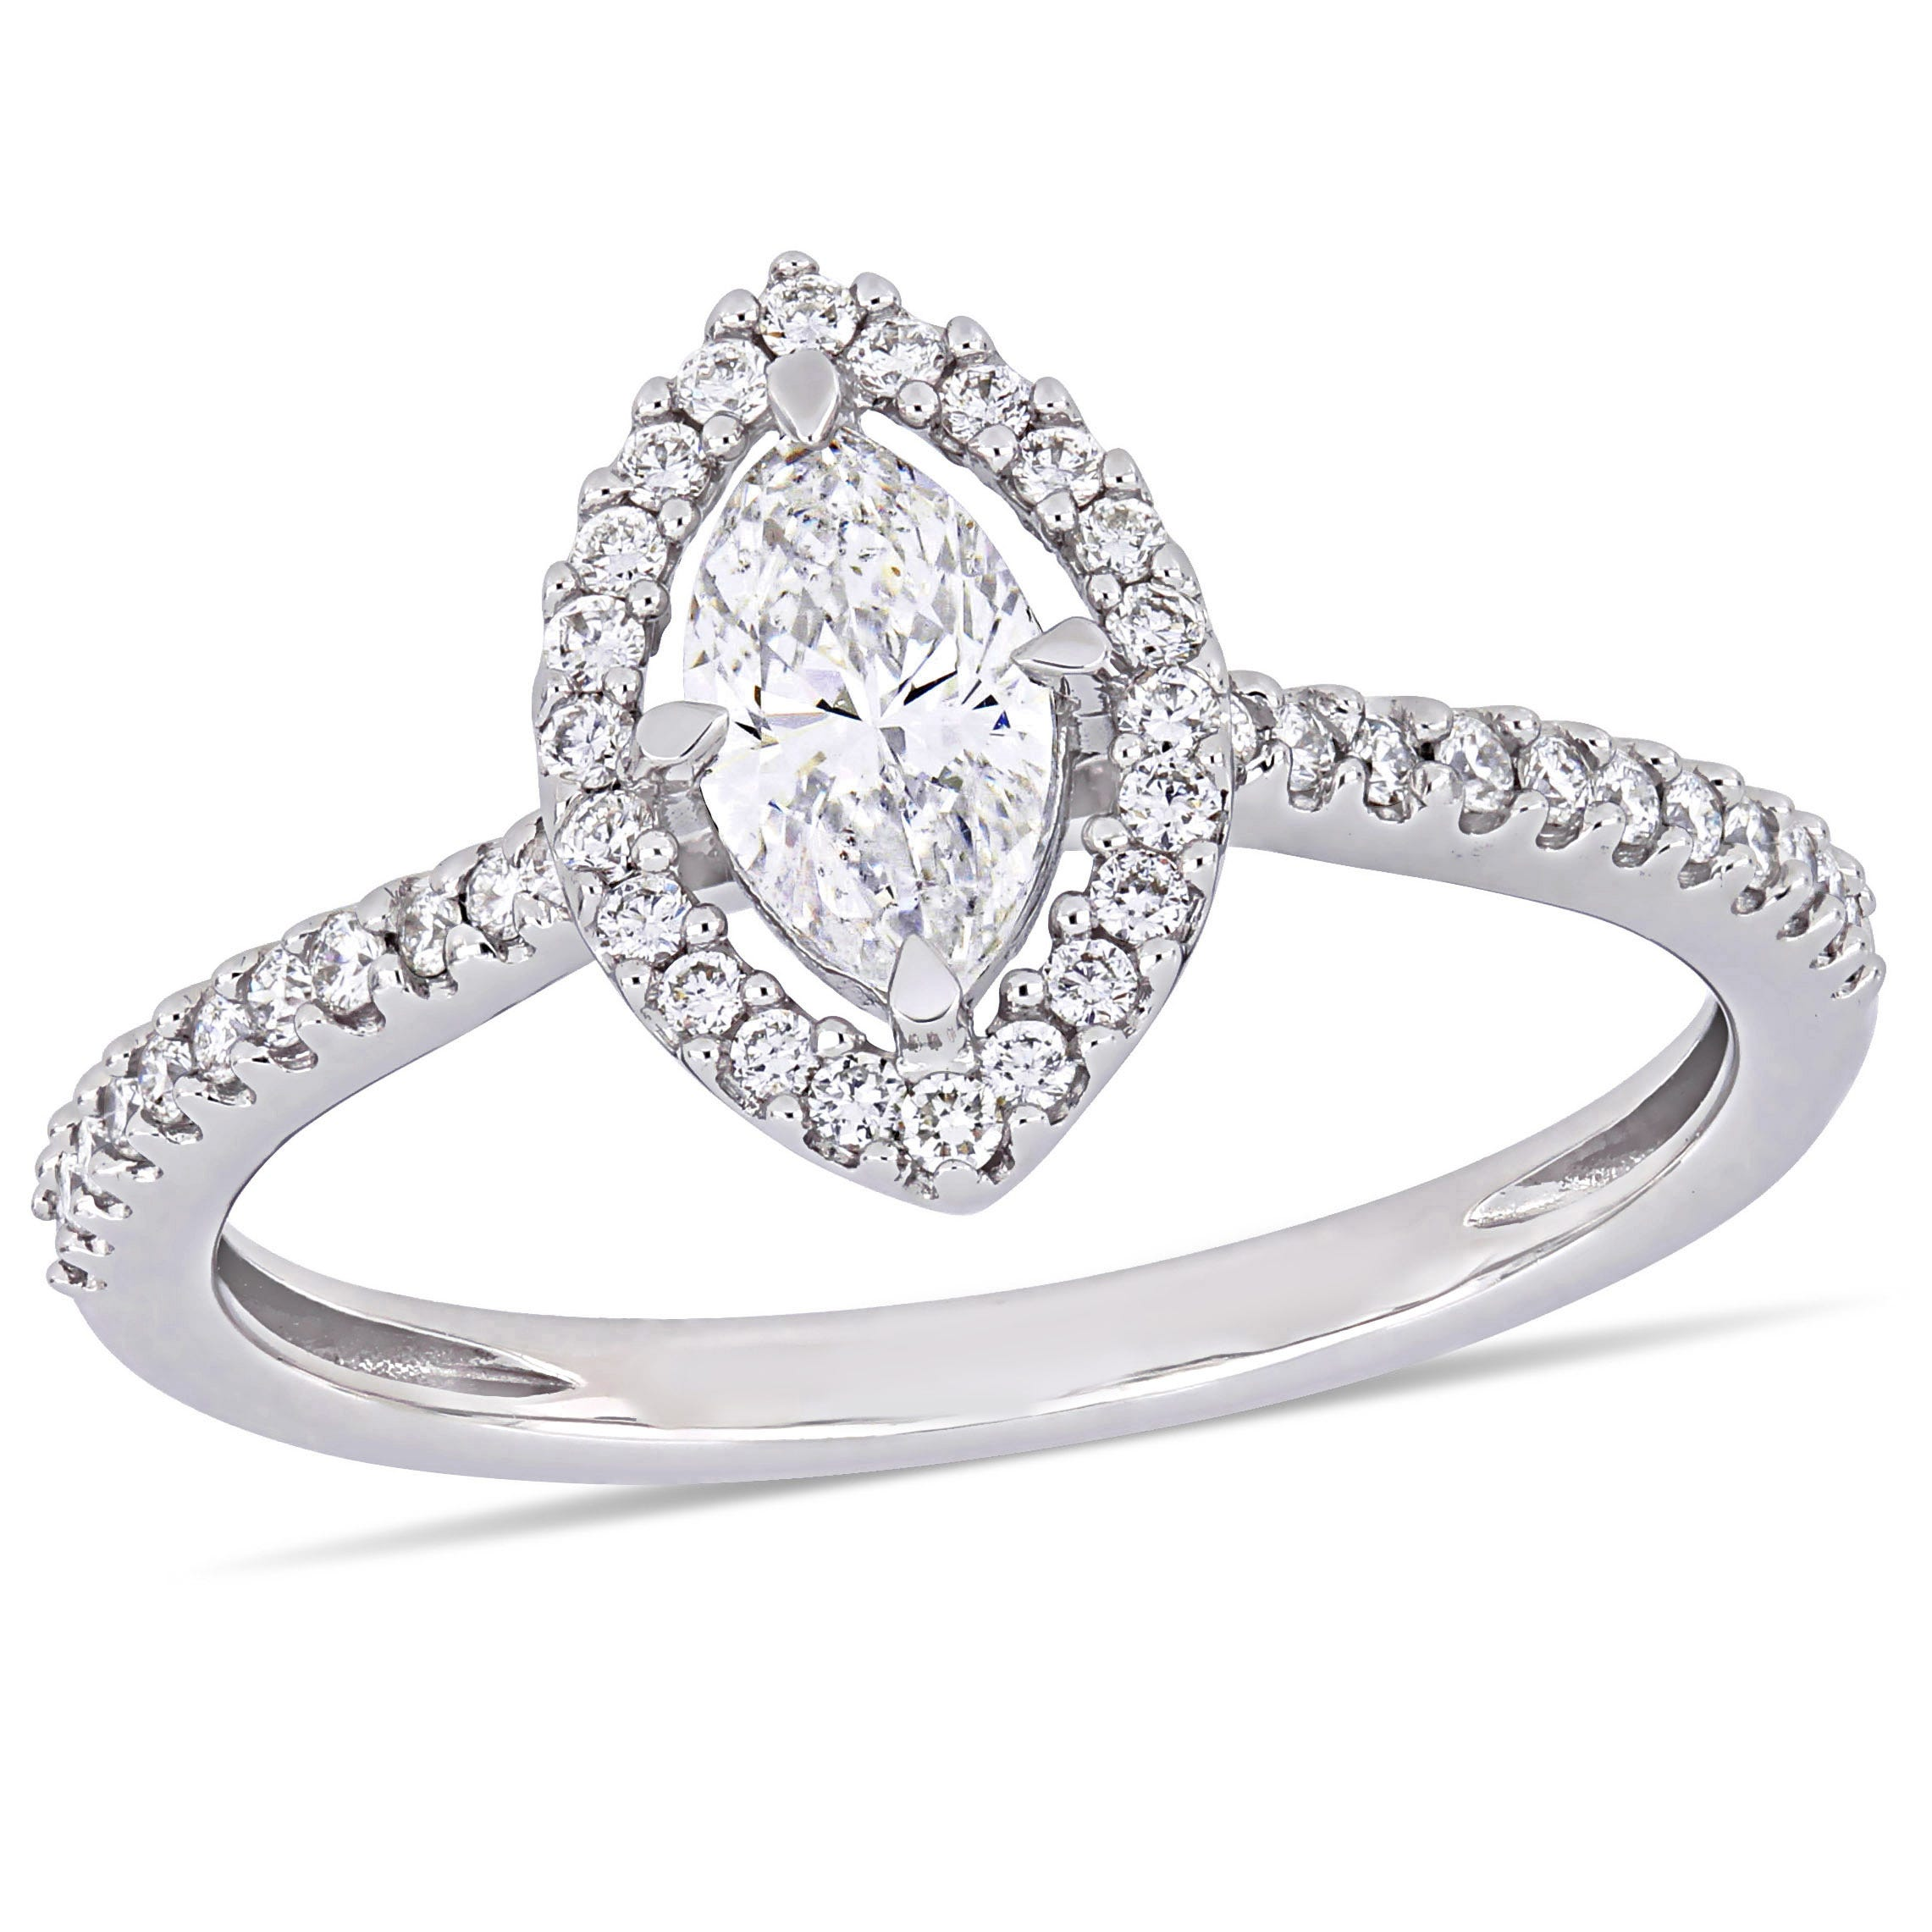 Marquise Diamond & Floating Halo 3/4ctw. Engagement Ring in 14k White Gold